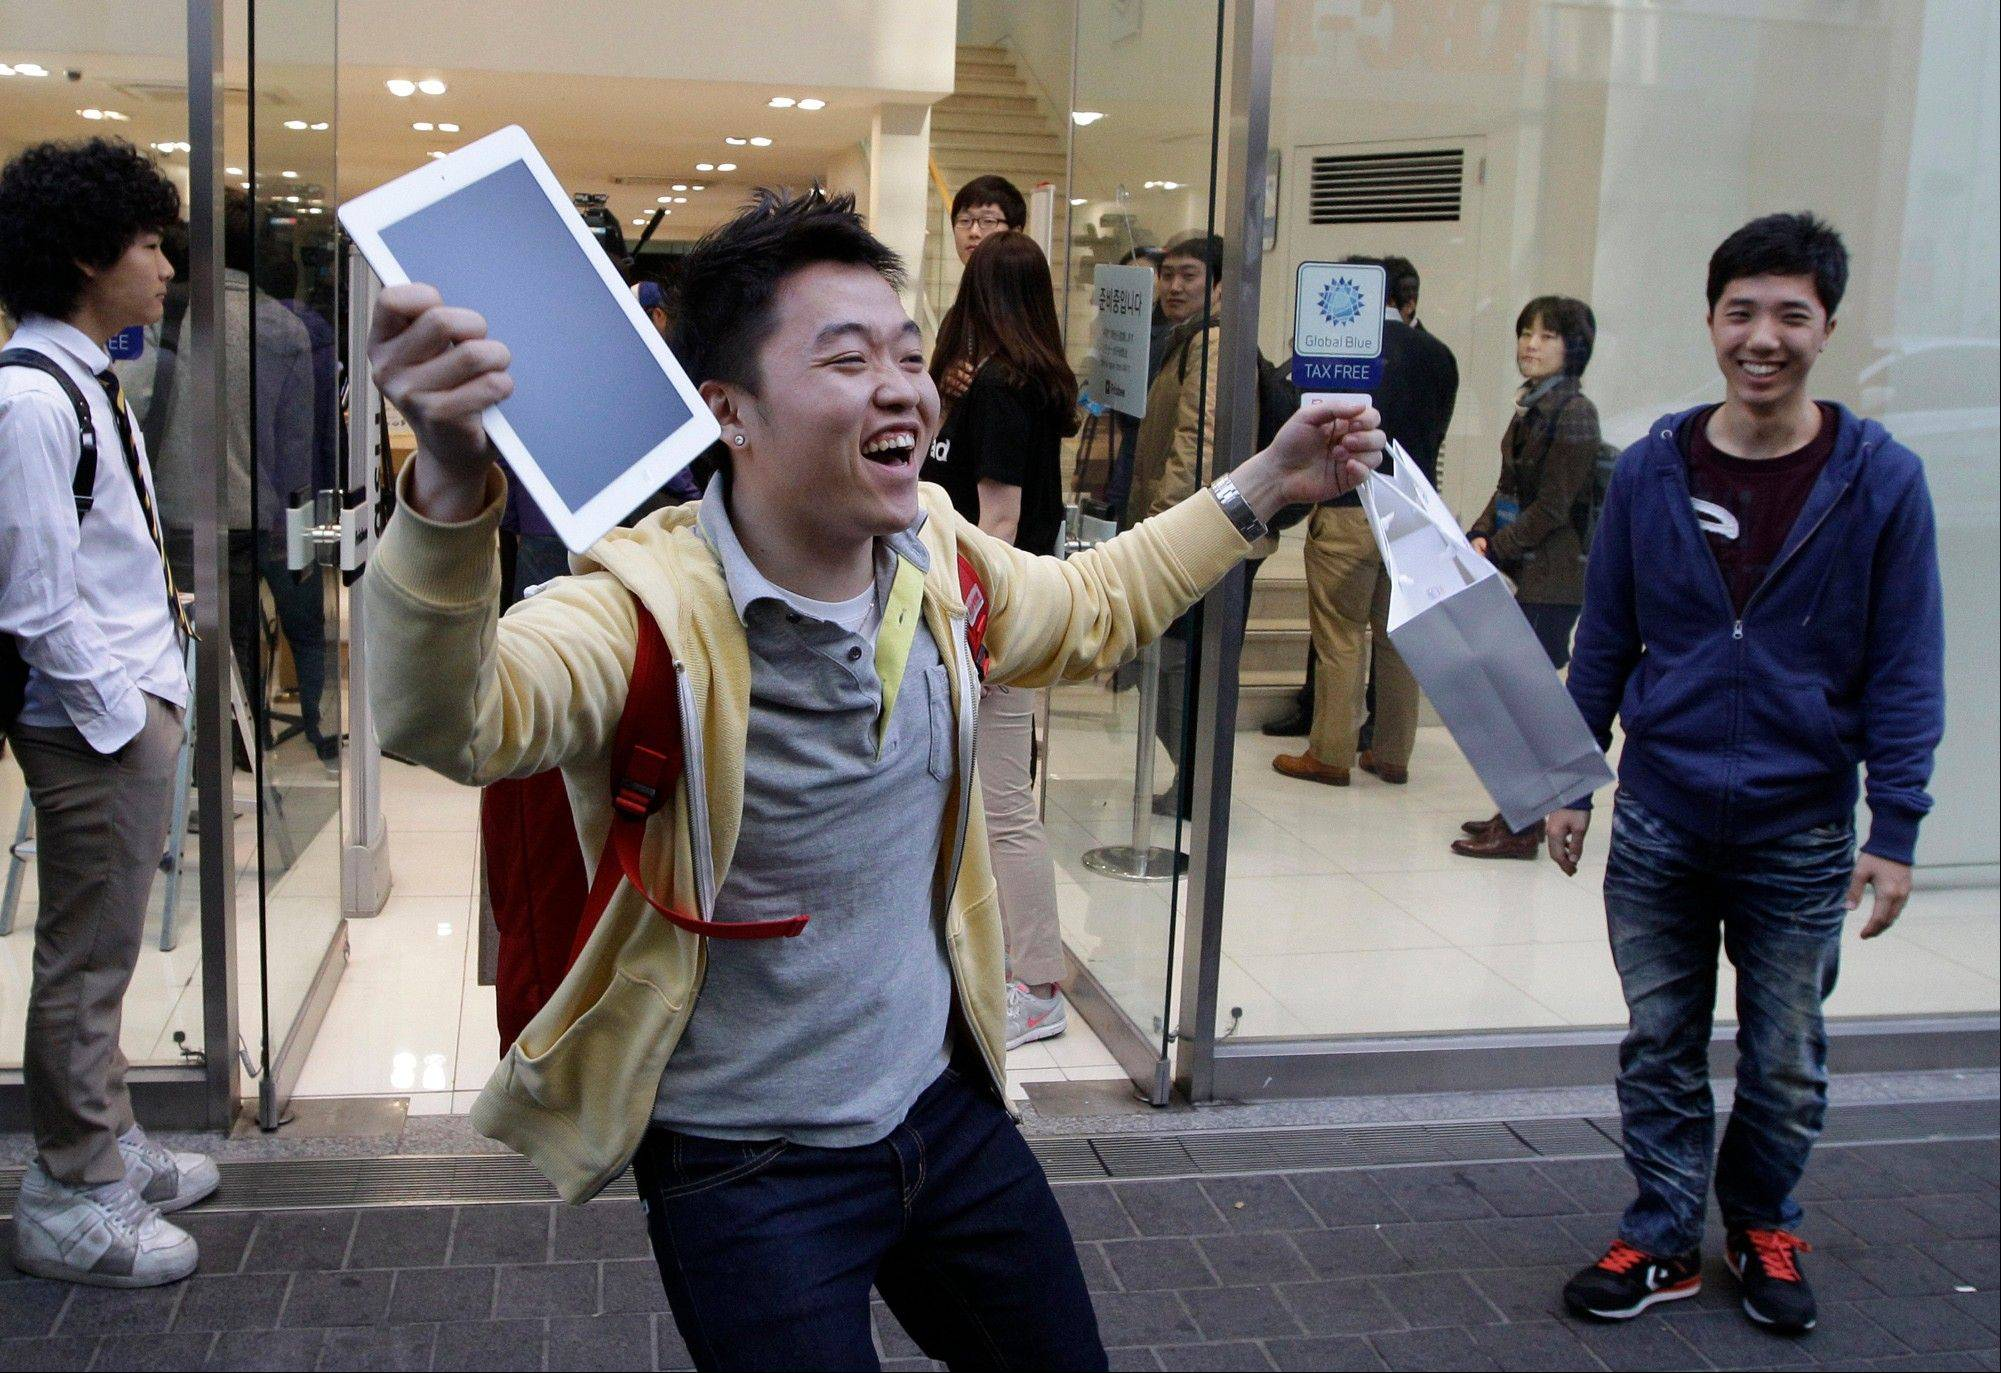 Baek Sung-min, 23, reacts after purchasing a new iPad at an Apple store in Seoul, South Korea. In Google's 12th annual roundup of global trending searches, the iPad 3 was ranked fourth.